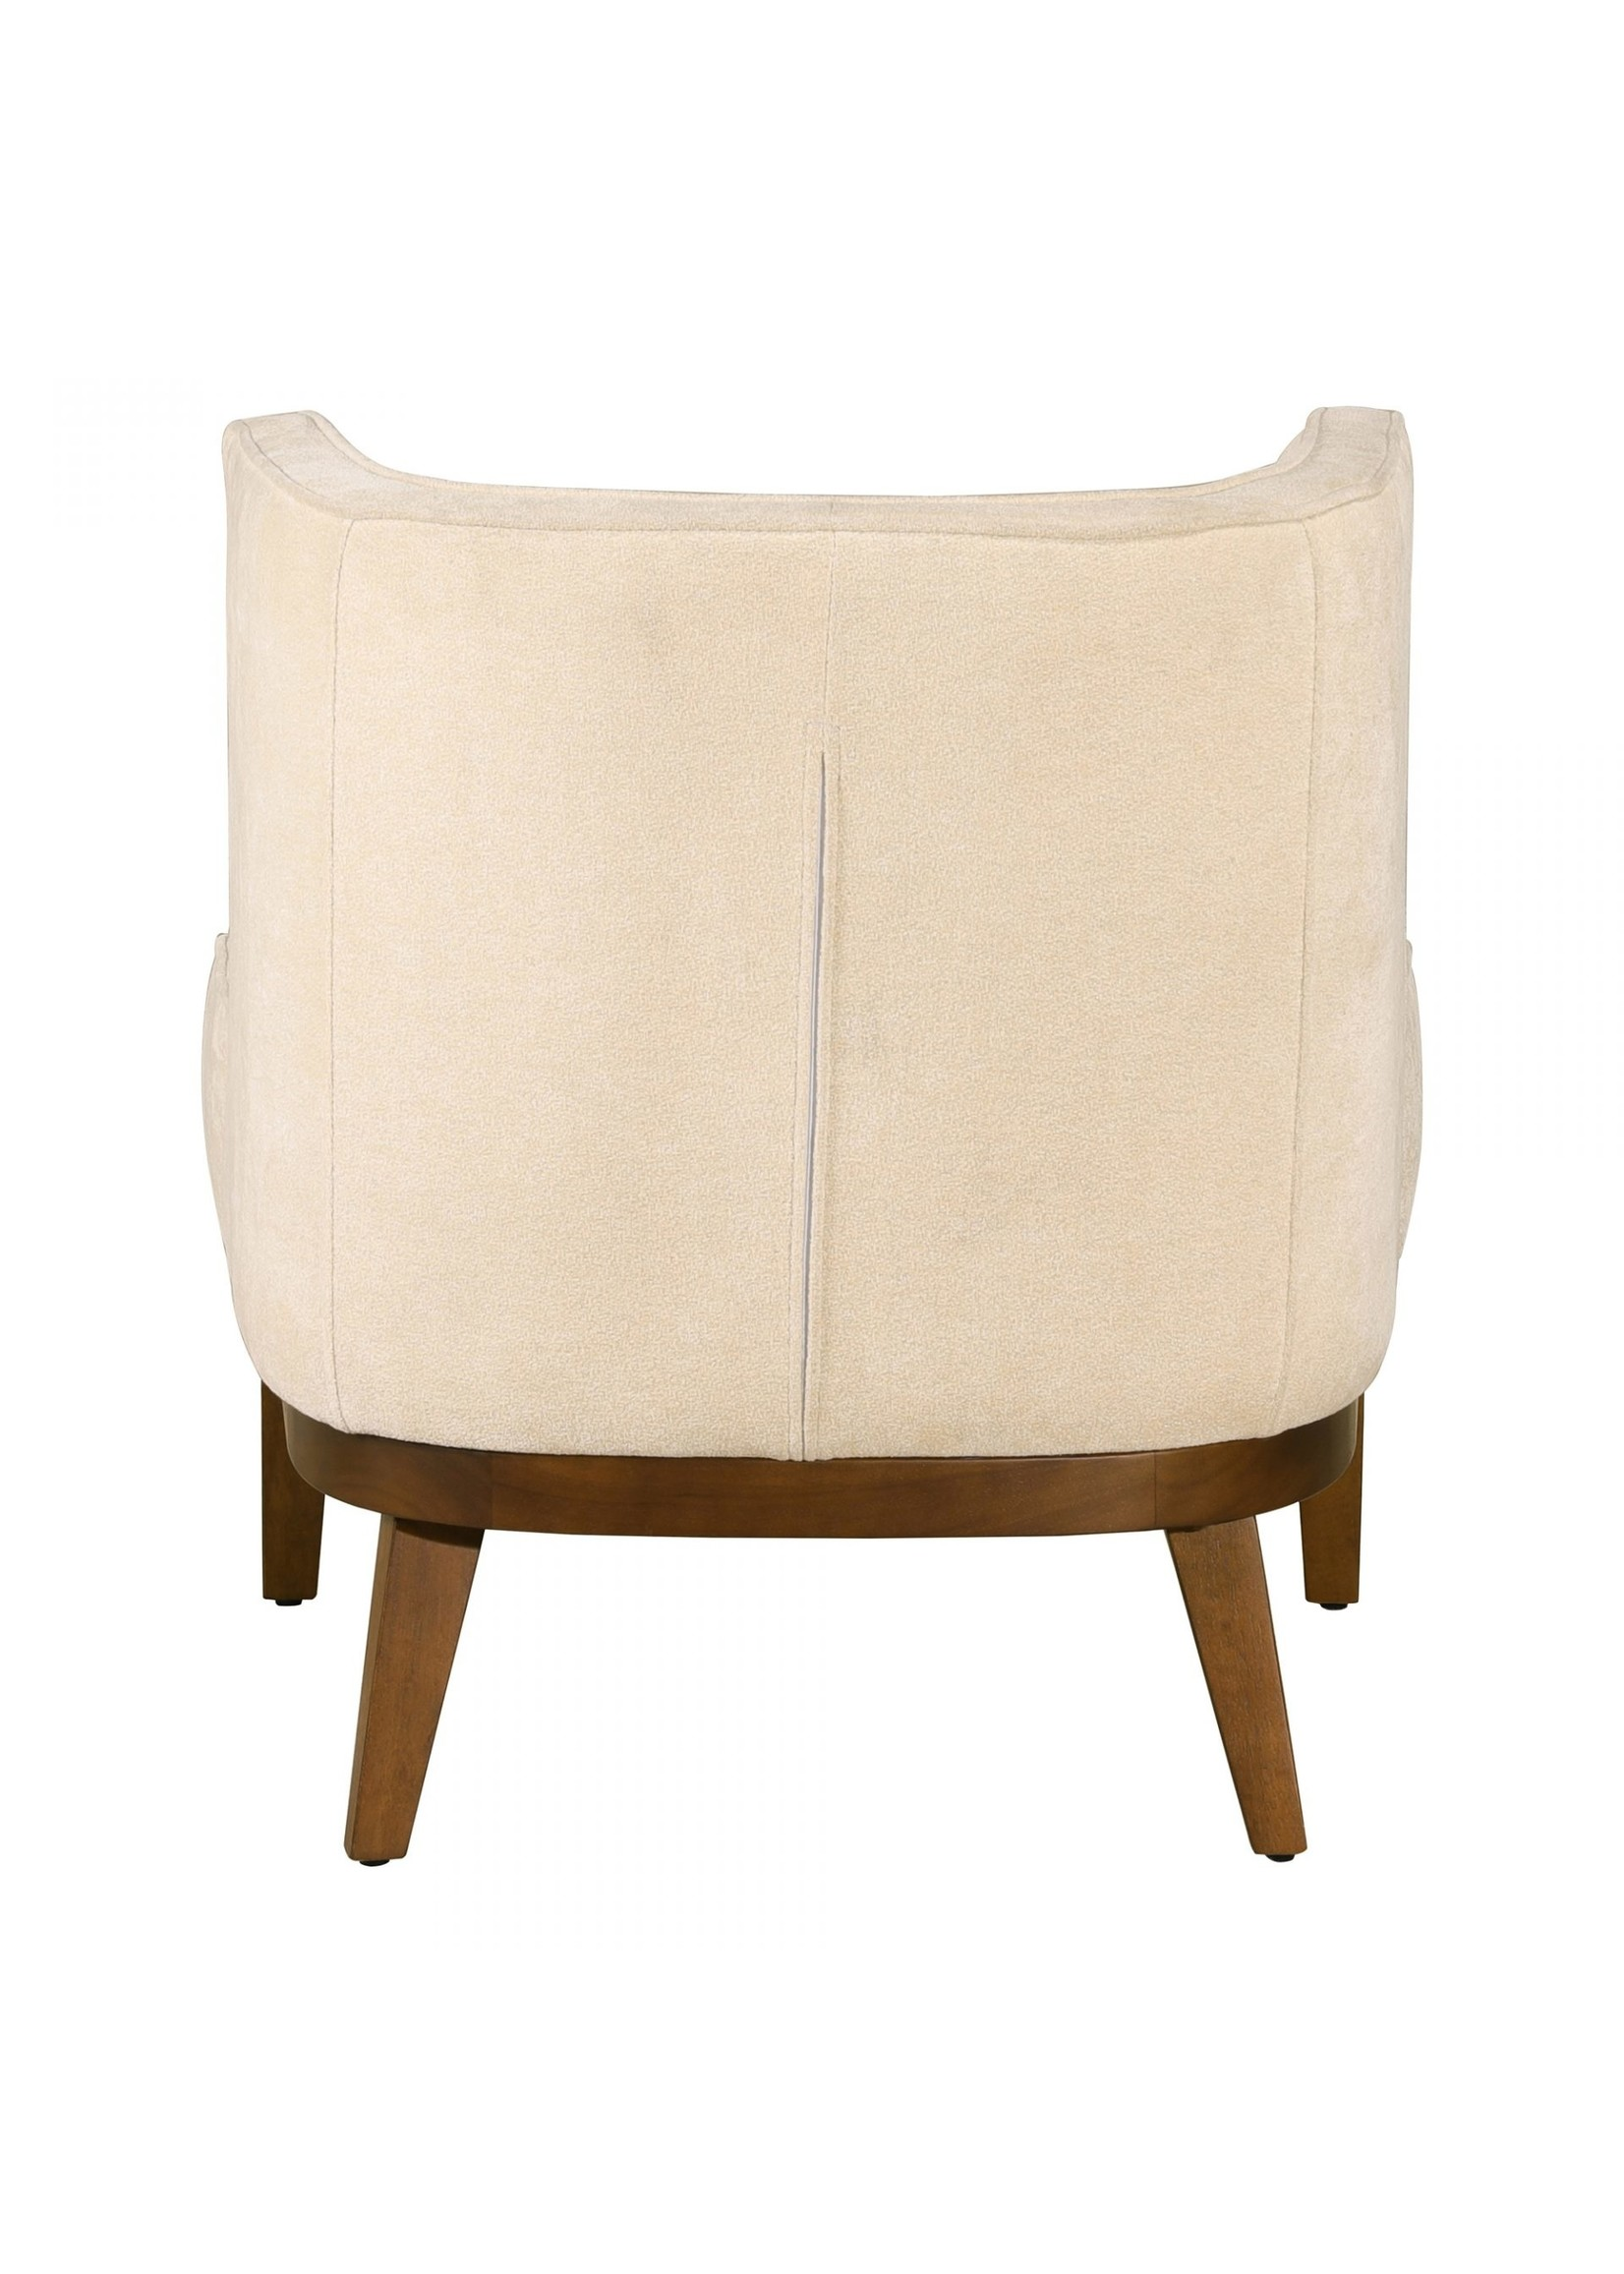 Moes Home Collection Daniel Chair Beige by MOES